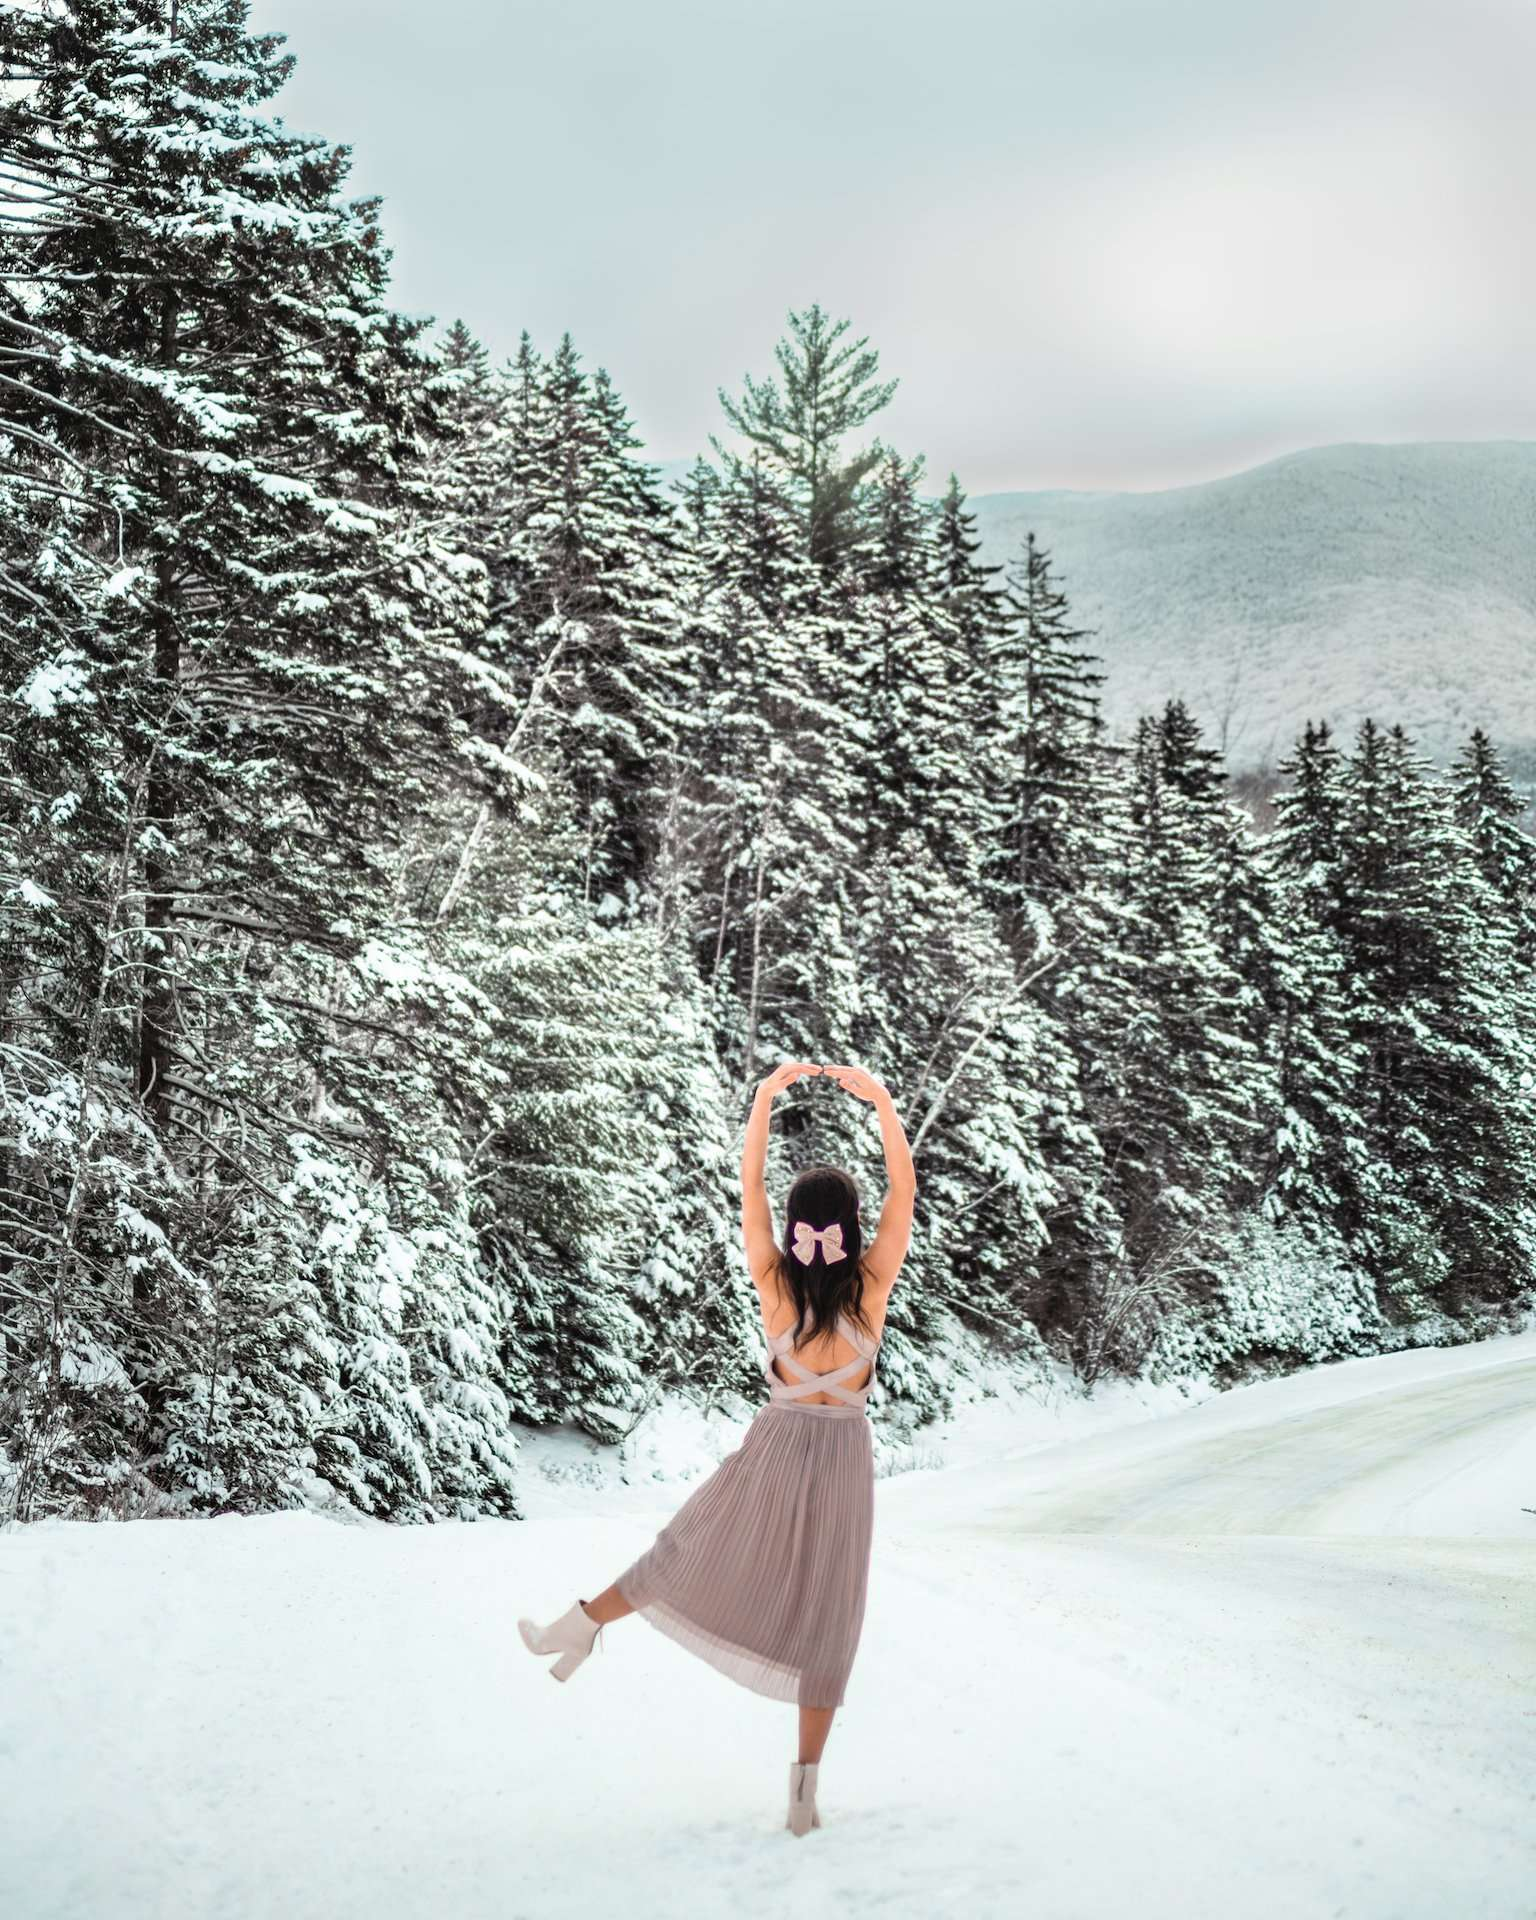 girl in dress dancing in snow from back